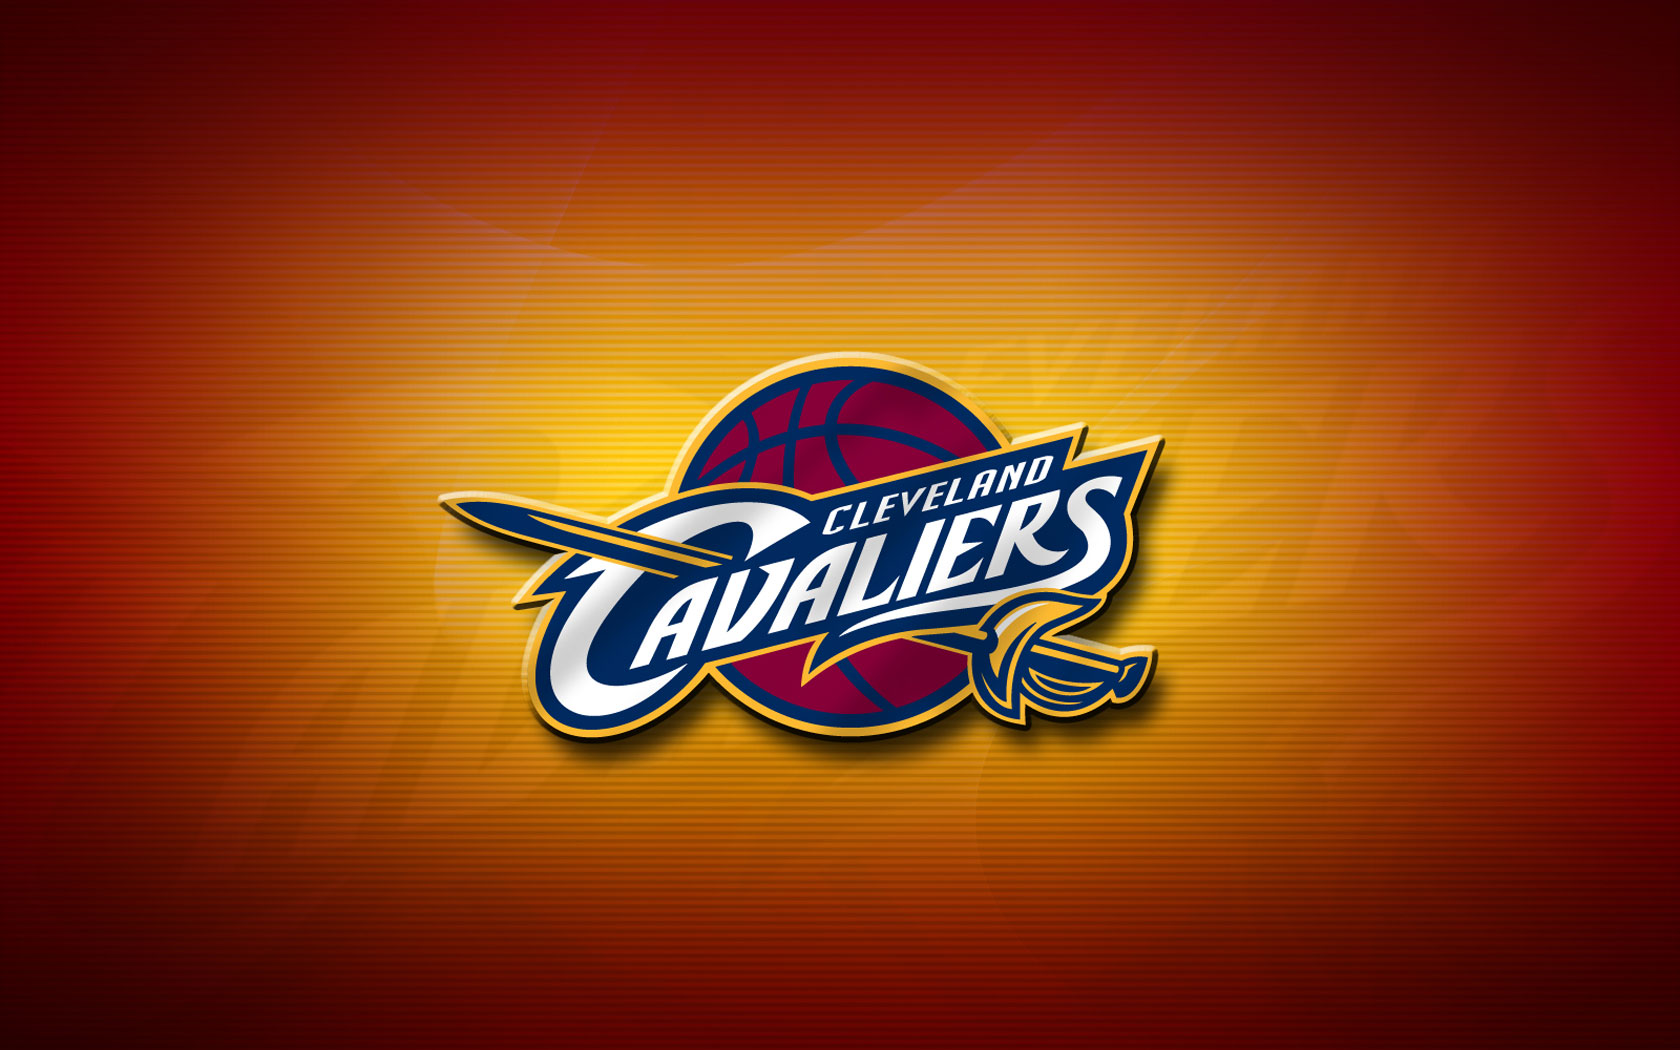 High Resolution Wallpaper | Cleveland Cavaliers 1680x1050 px